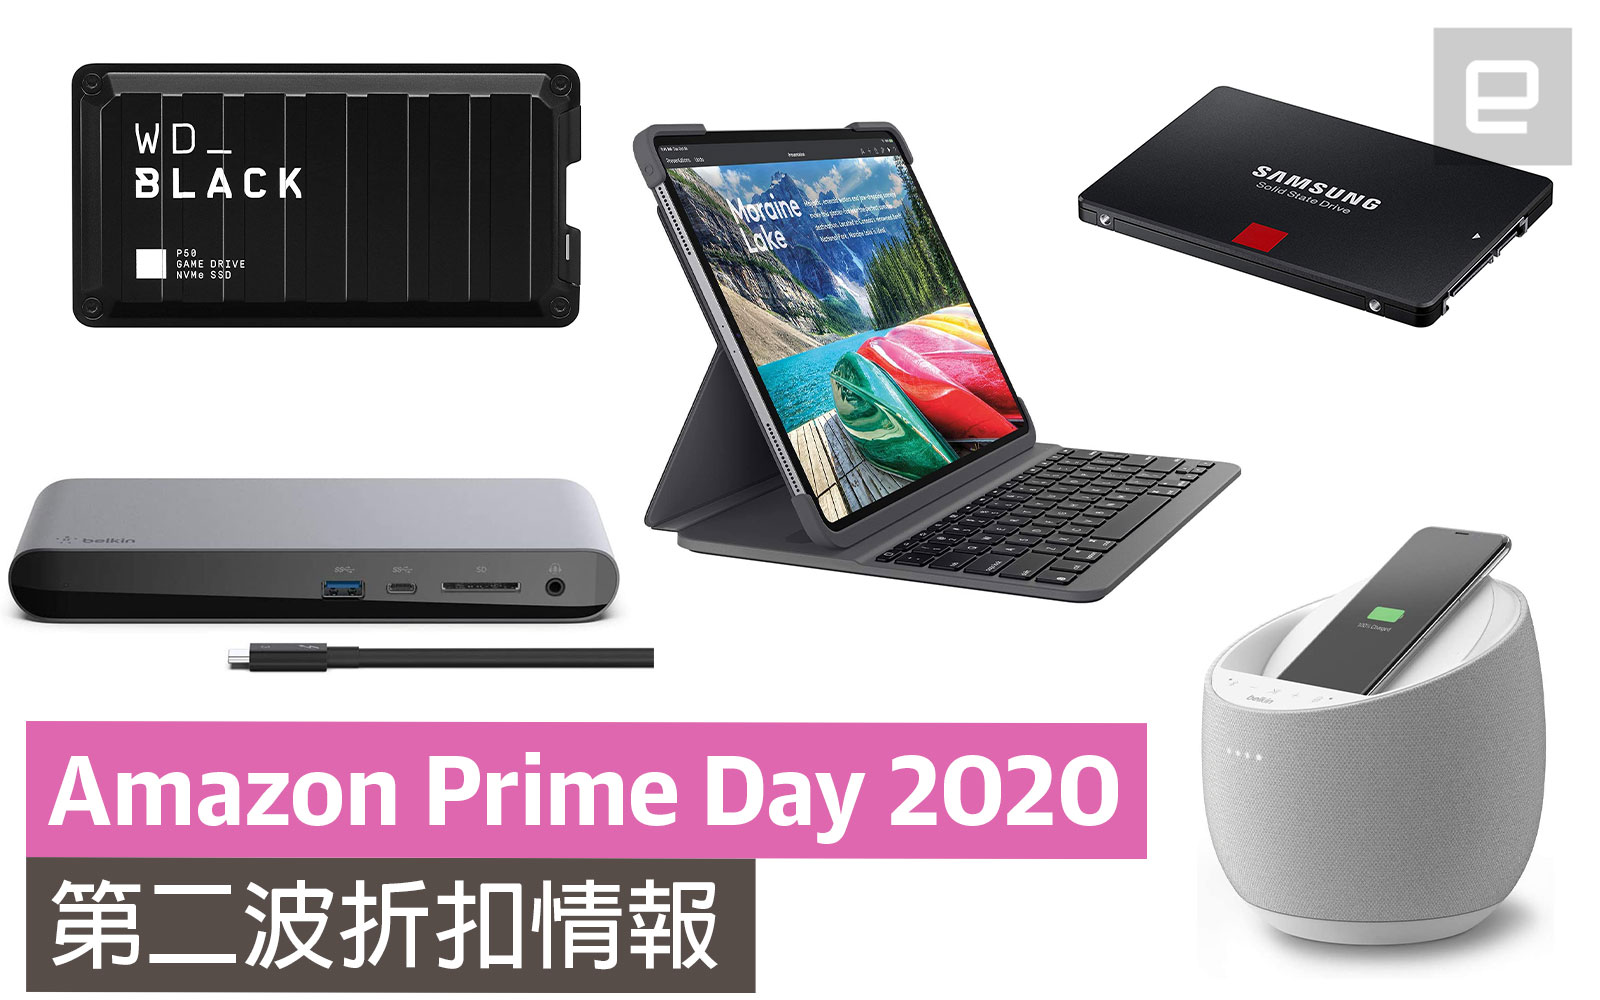 Amazon Prime Day 1 2nd wave